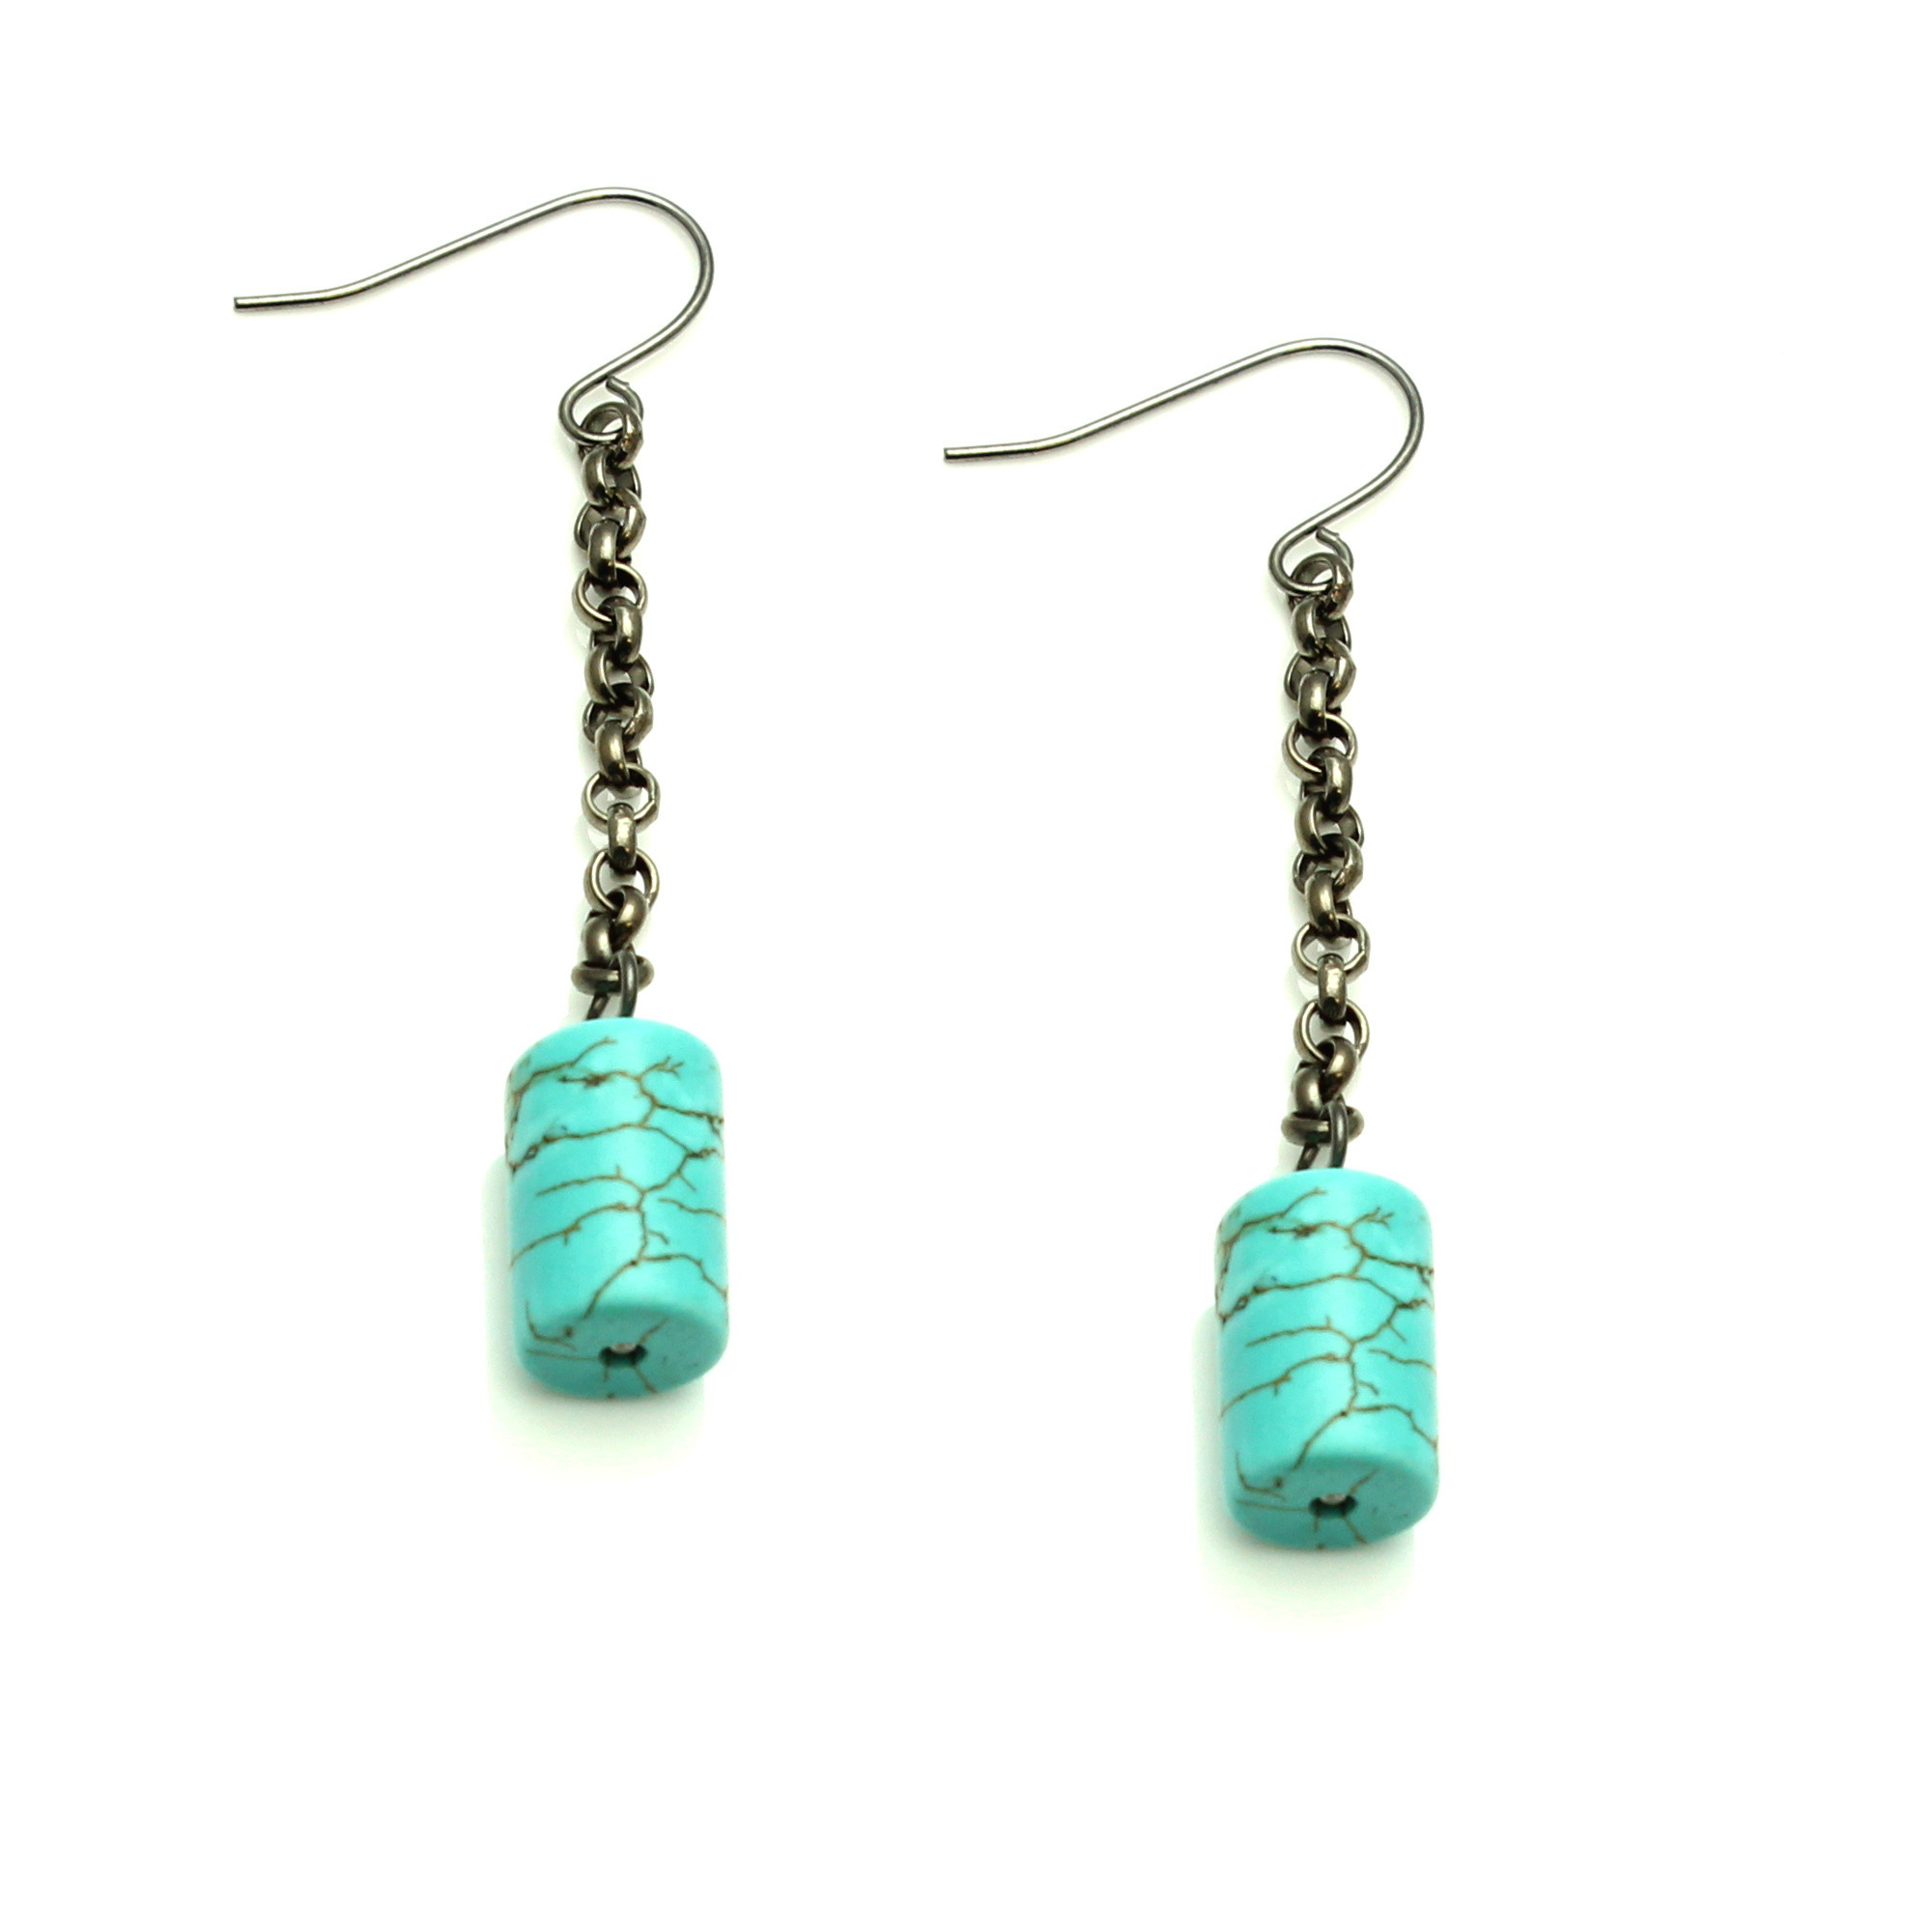 Starfish Project, Turquoise and Howlite Cylindrical Stone Dangle Earrings on Gunmetal Hooks